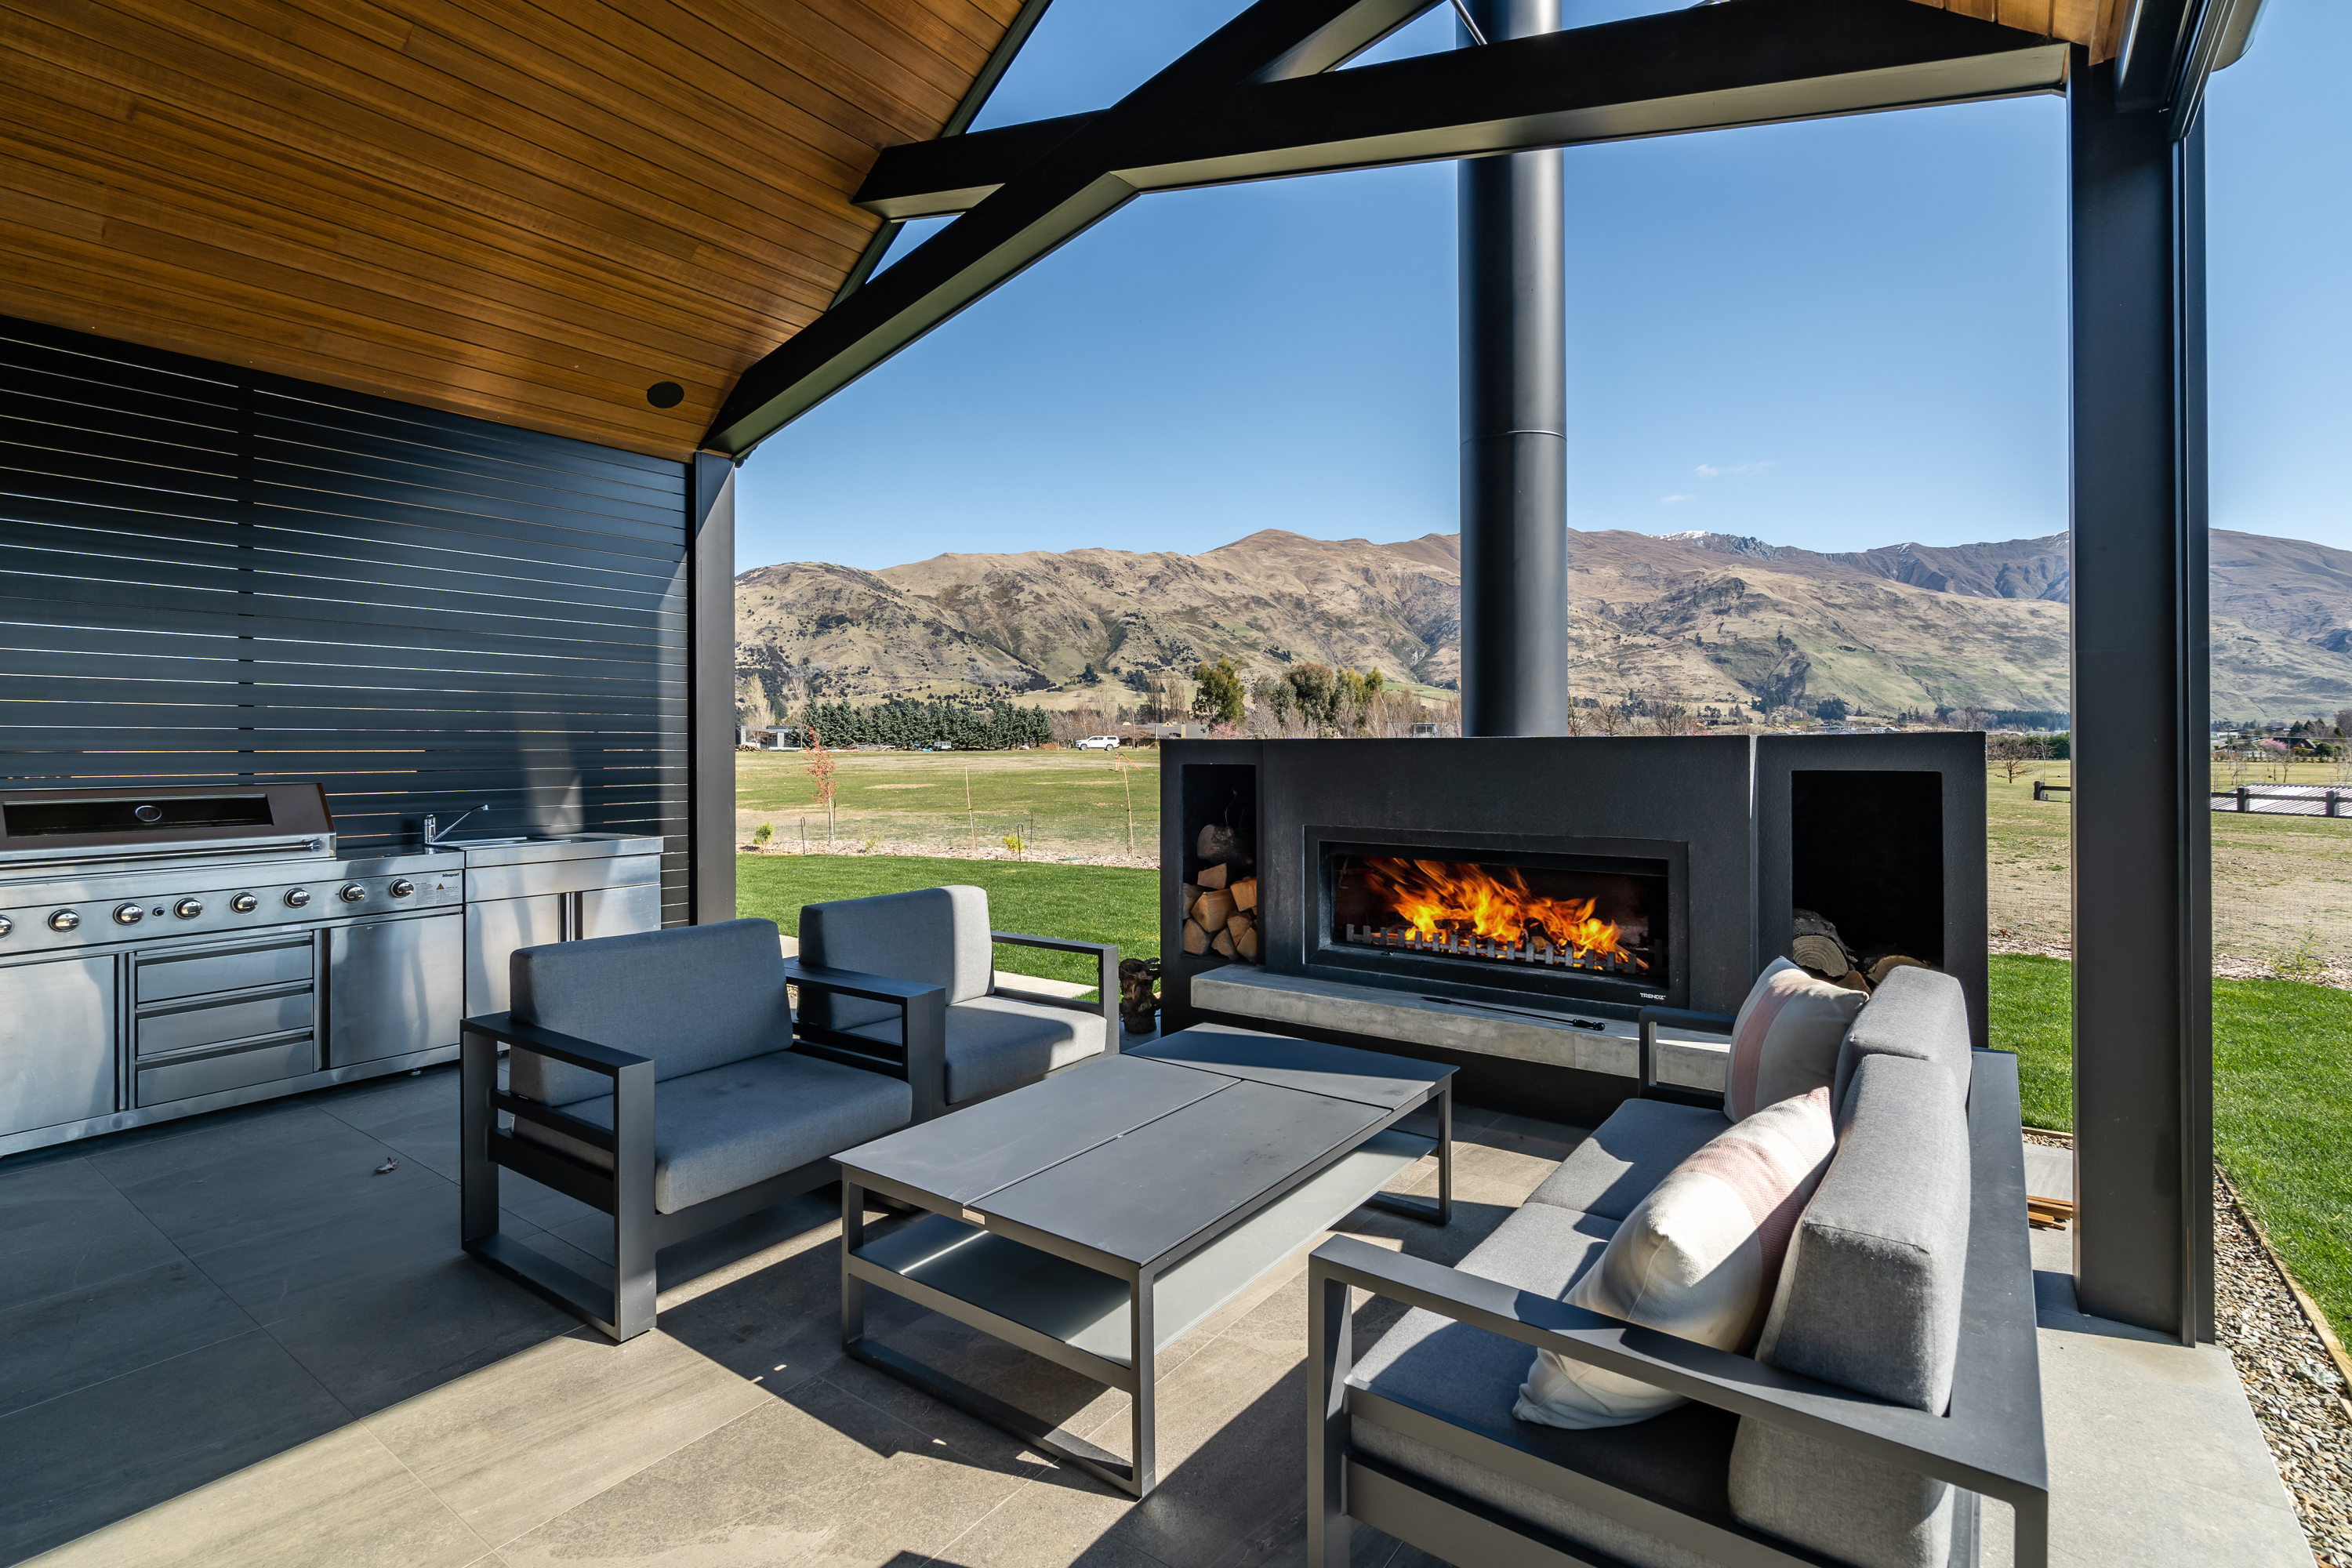 Including an outdoor fireplace in landscape design